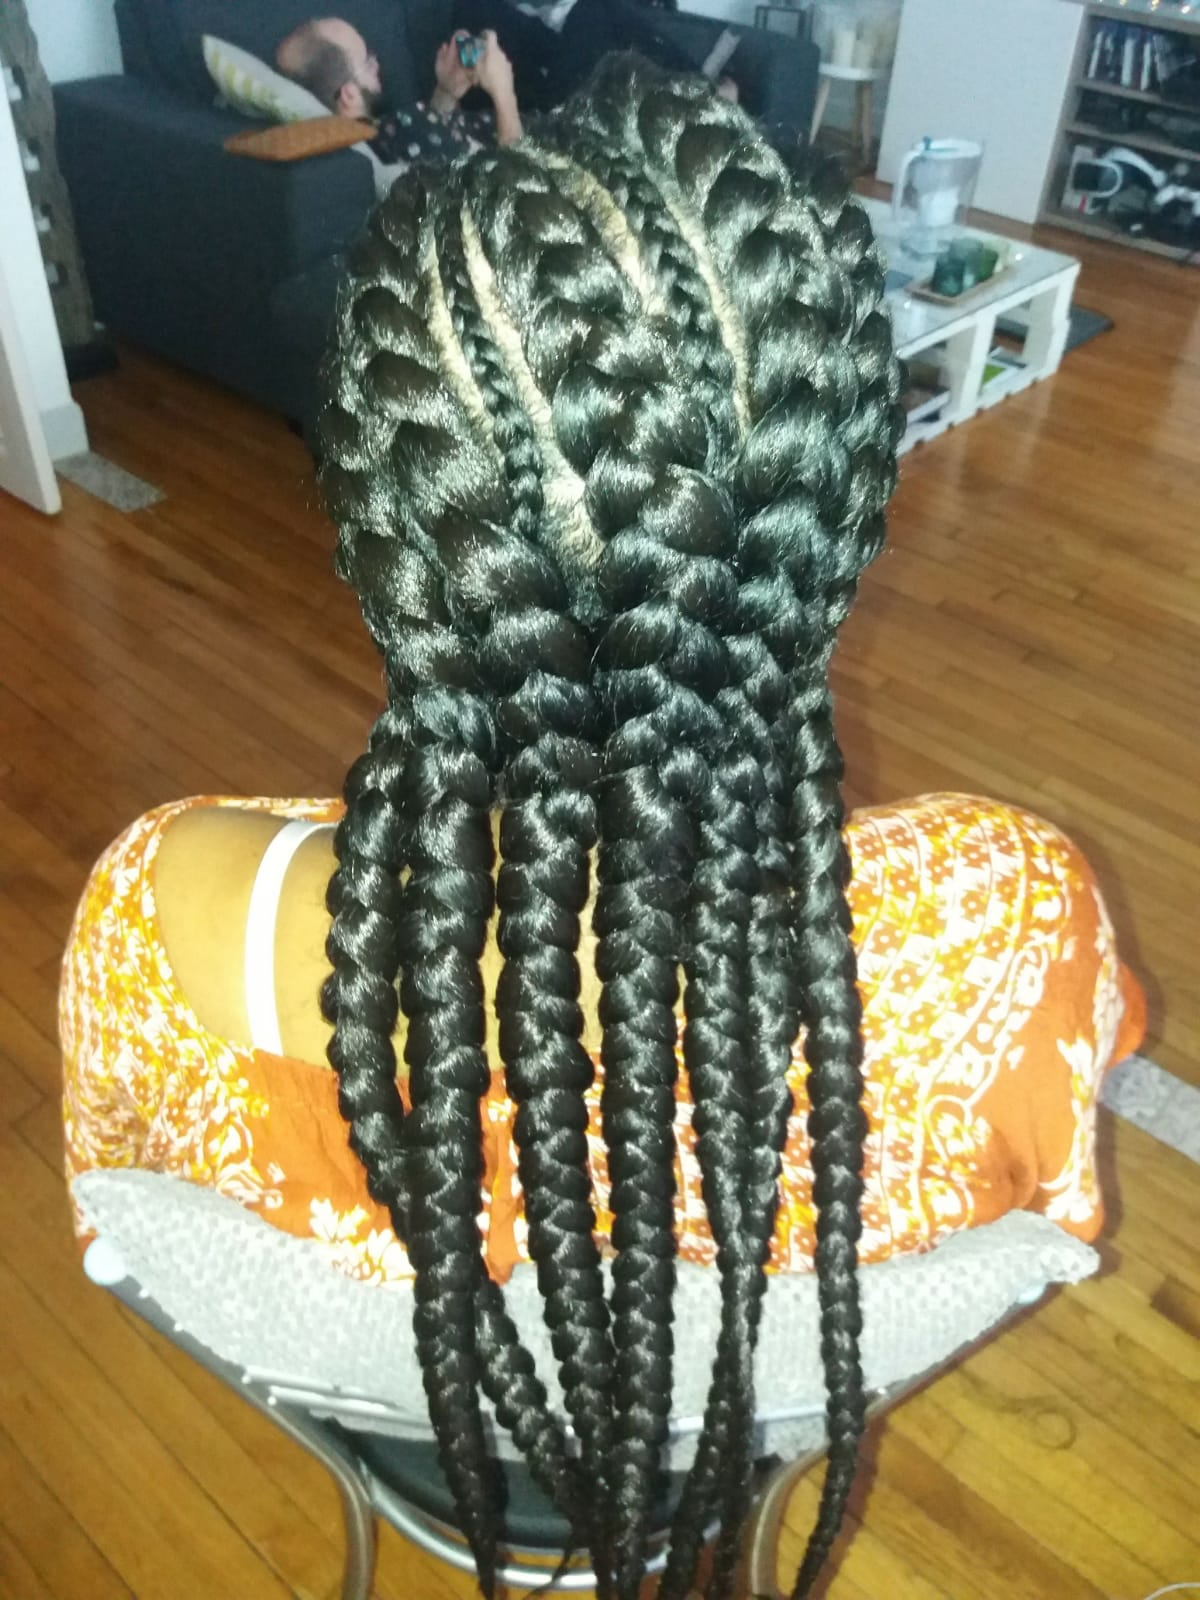 salon de coiffure afro tresse tresses box braids crochet braids vanilles tissages paris 75 77 78 91 92 93 94 95 CRXXNKXK